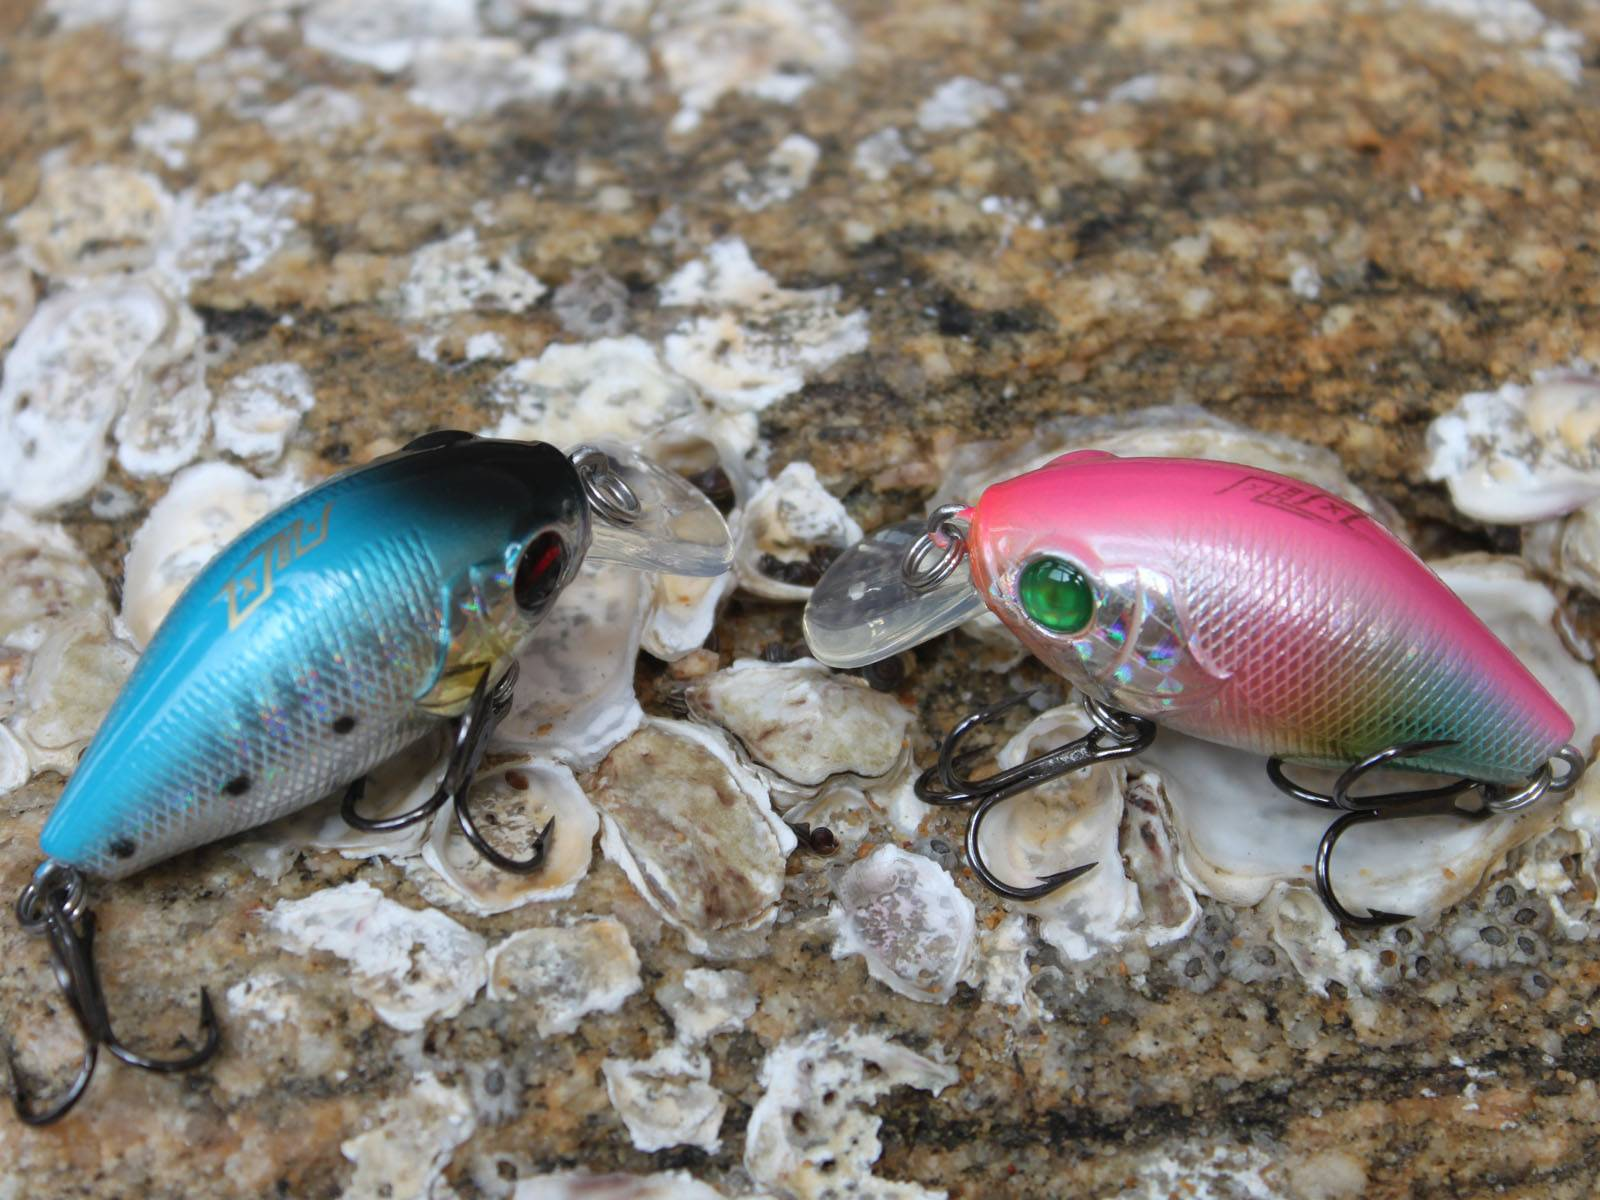 fishing lure bait with metal hook crank lure